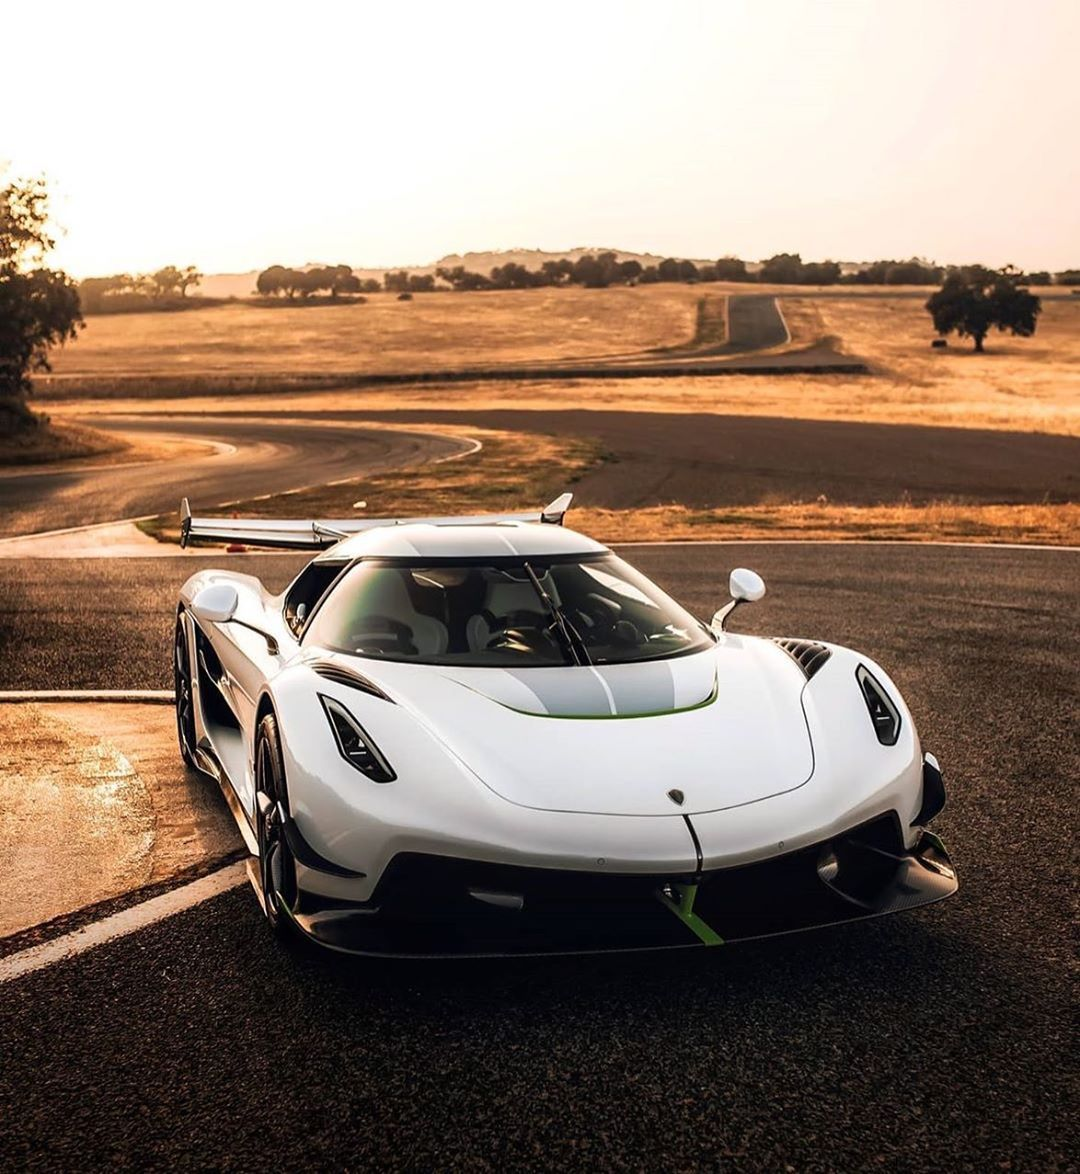 Theboring Cars Posted On Their Instagram Profile Rate This Koenigsegg From 0 100 Follow Theboring Cars For More In 2020 Super Cars Luxury Cars Cars